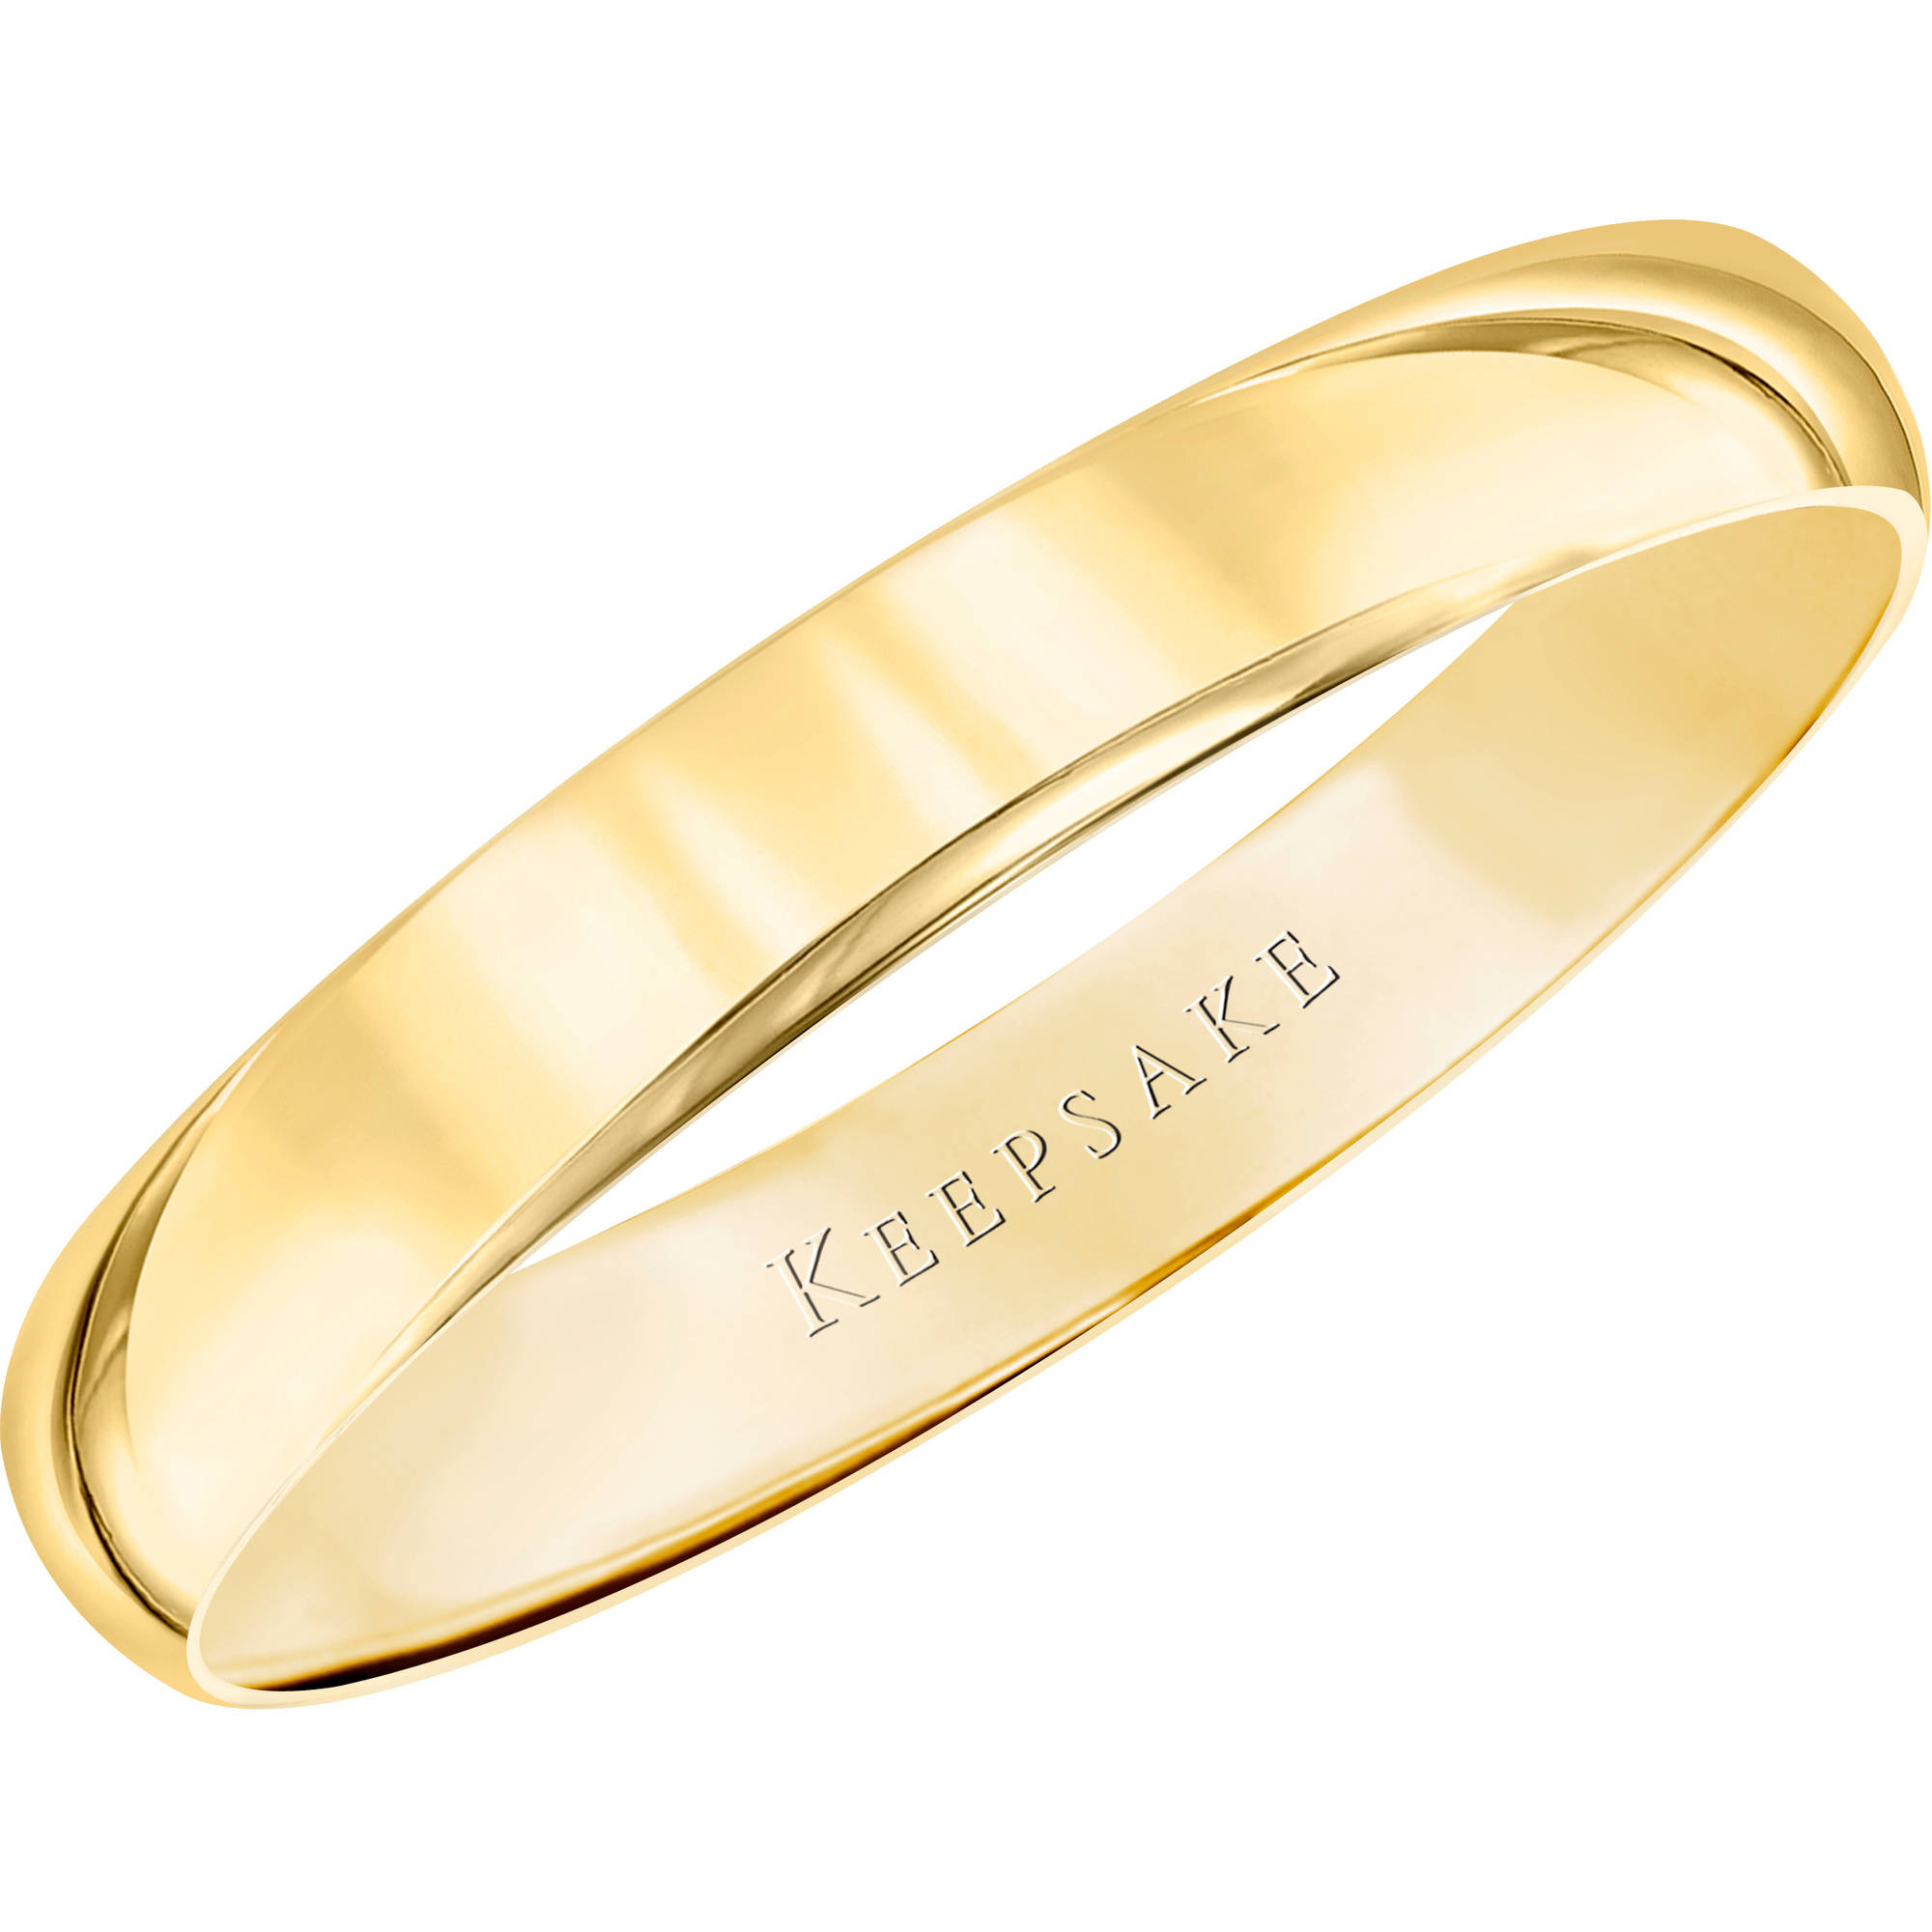 Keepsake 10kt Yellow Gold Wedding Band, 3mm